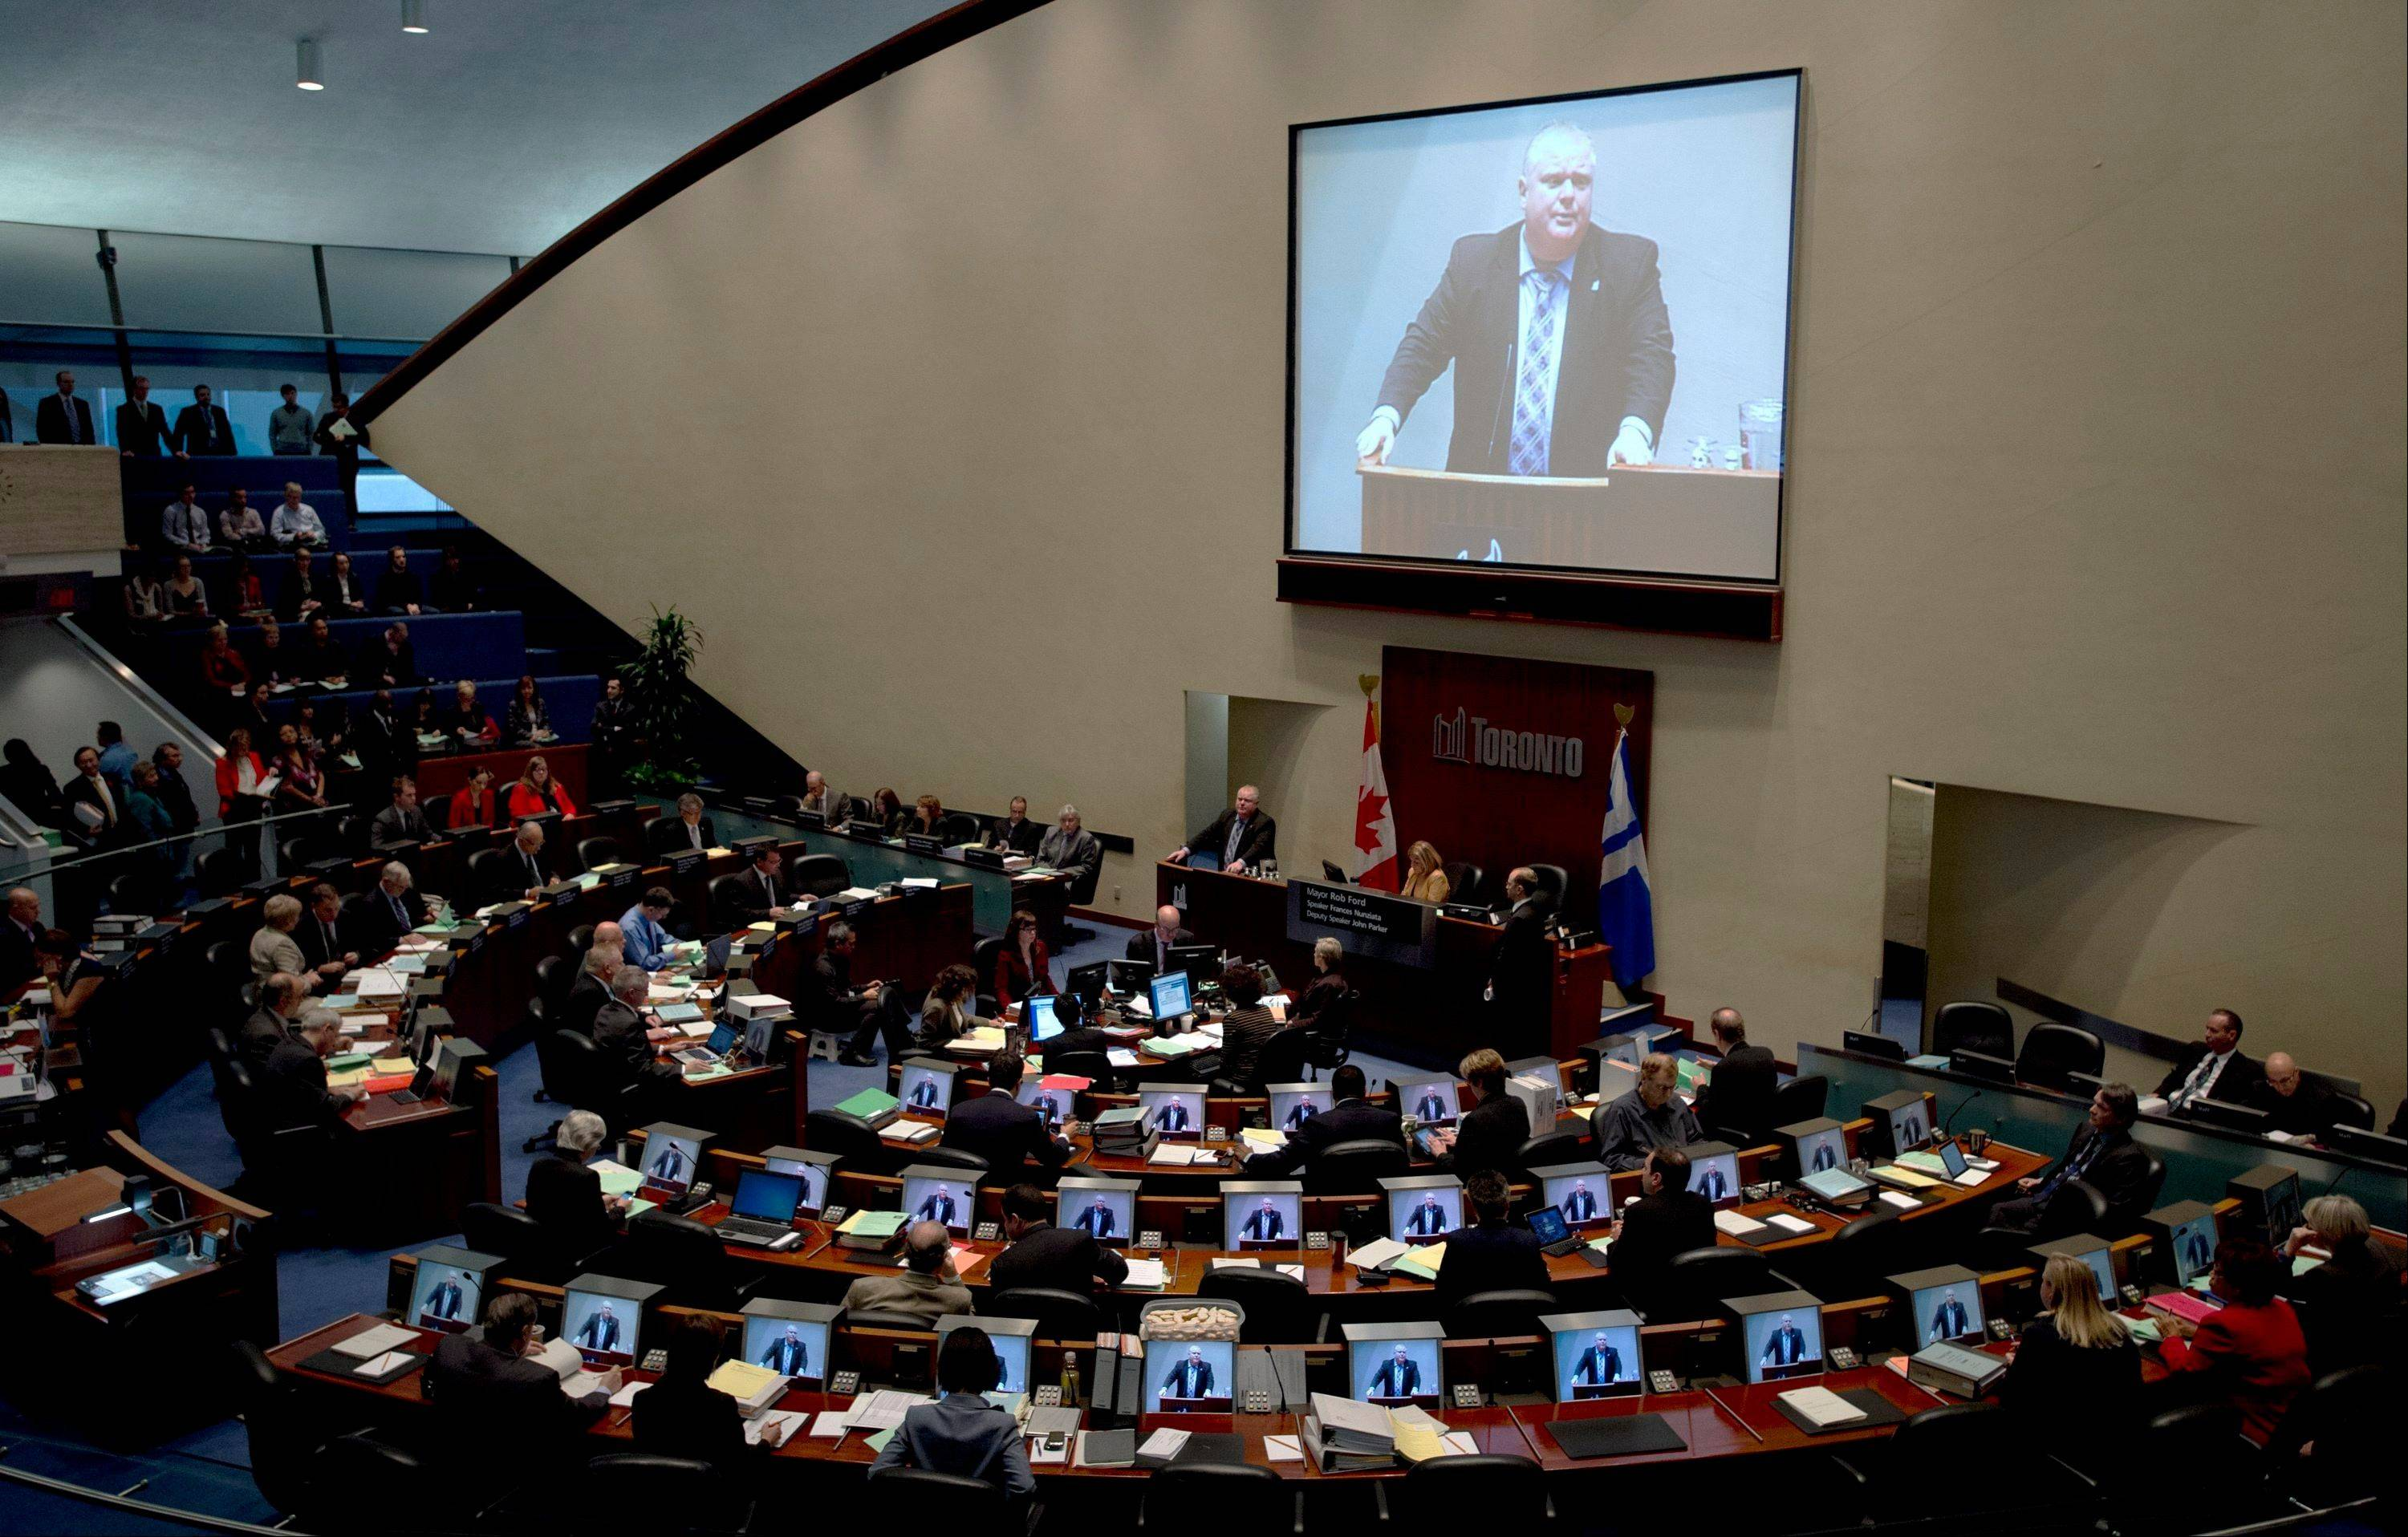 Mayor Rob Ford's refusal to resign has confounded Toronto's city council, where many members agree that his erratic behavior has consumed Toronto's politics and undermined efforts to tackle other challenges.